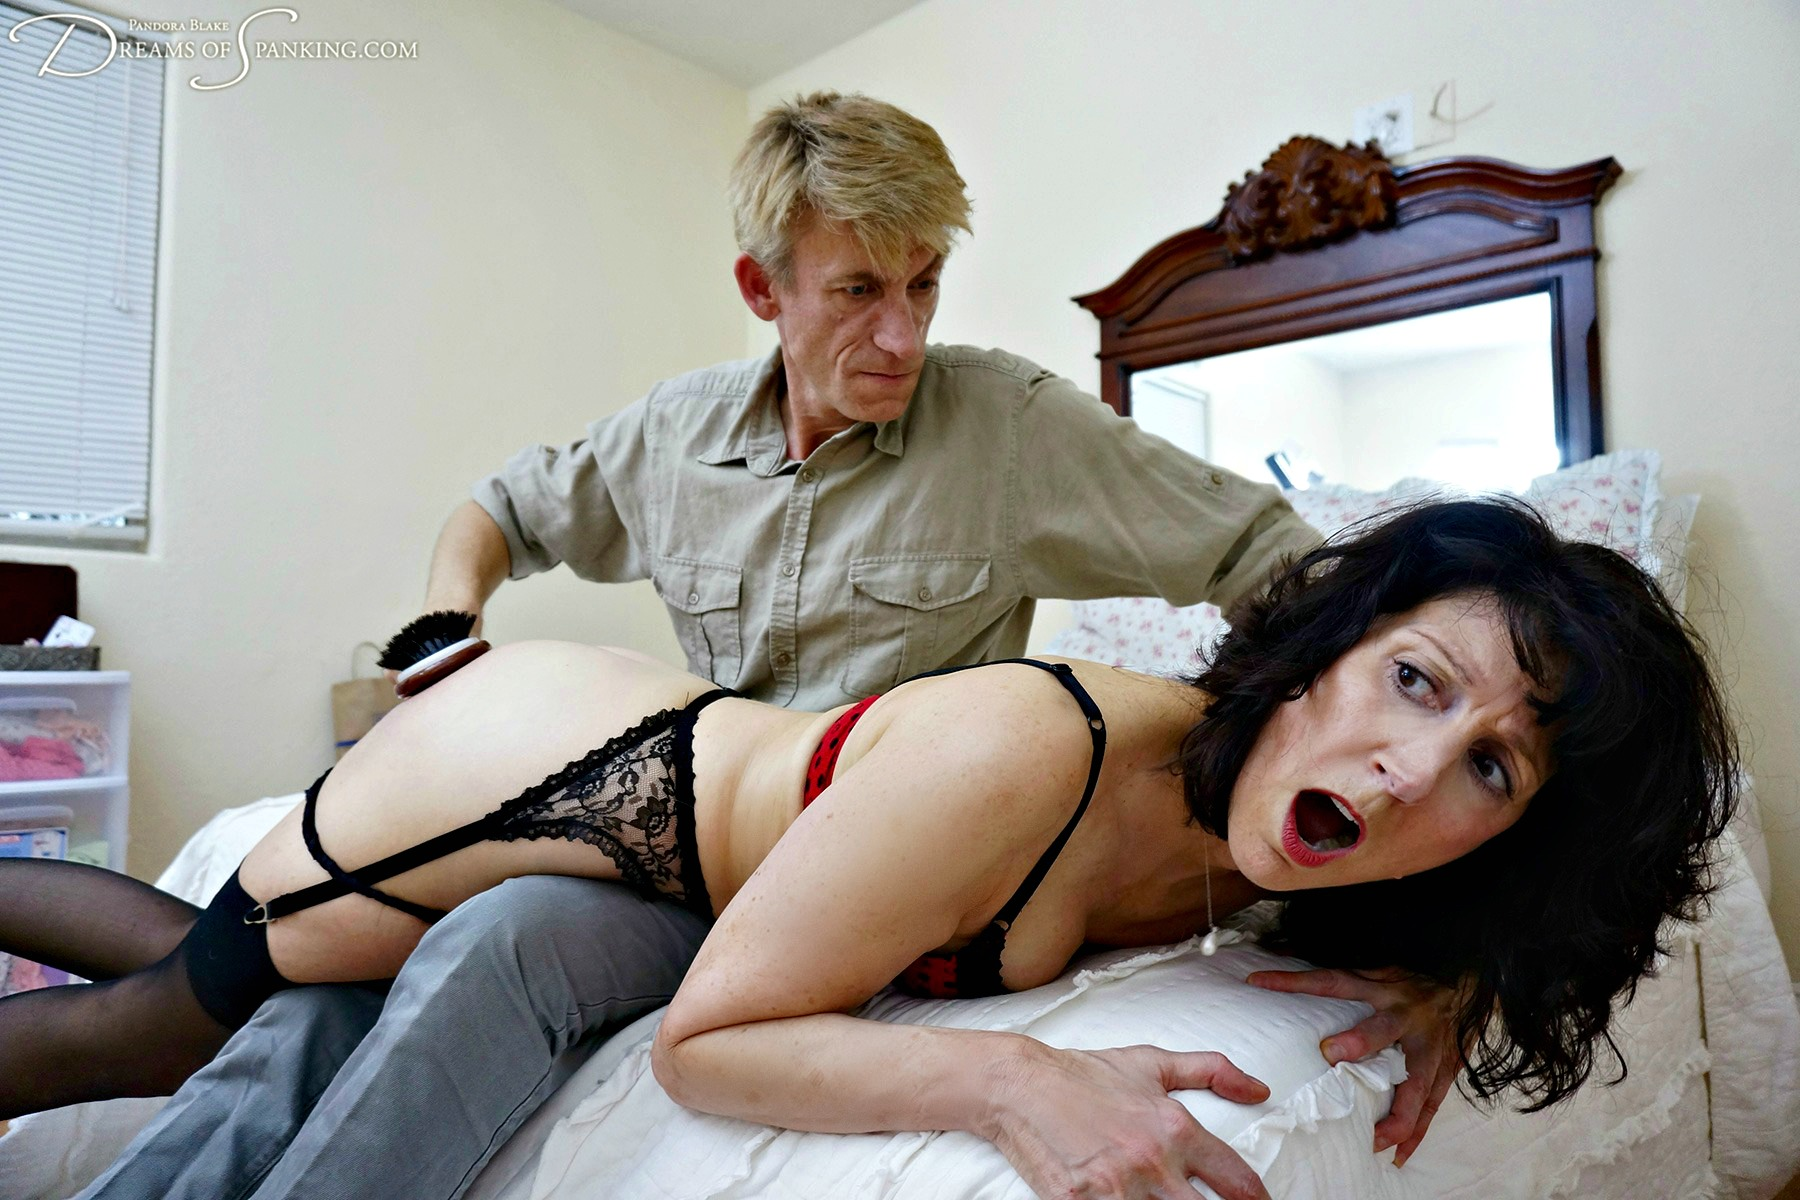 Dreams-of-Spanking_erica08